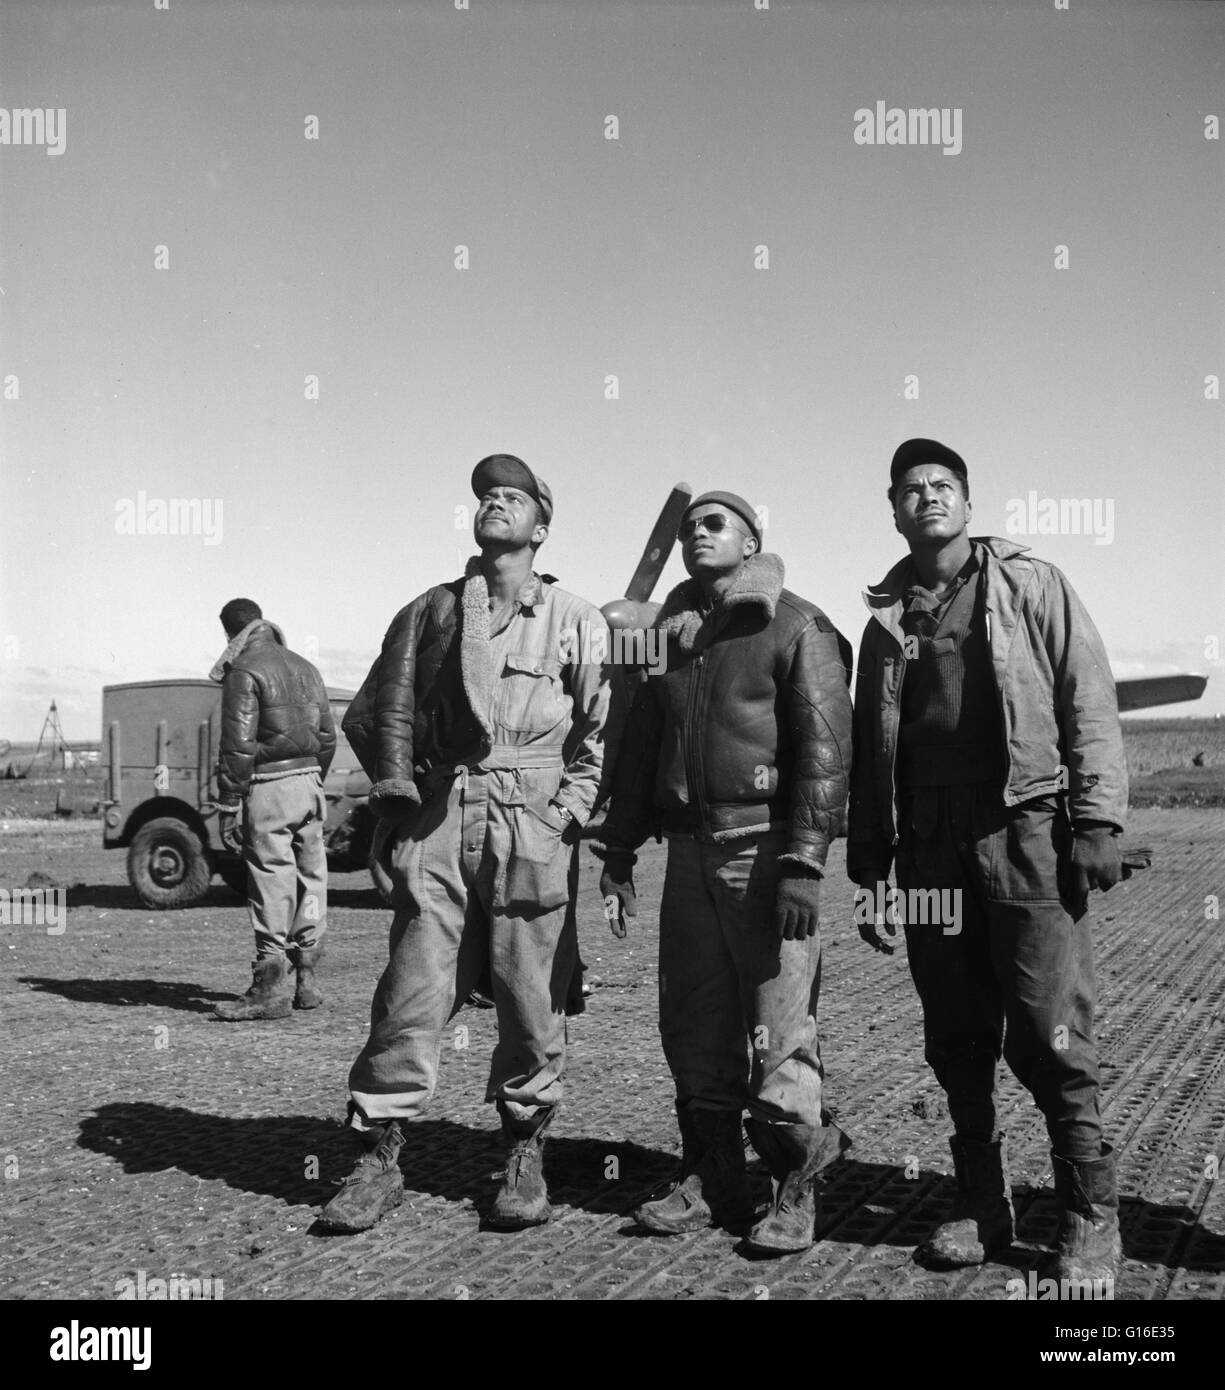 Entitled: 'Ground crew sweats in a mission' shows three Tuskegee airmen looking skyward, Ramitelli, Italy. - Stock Image